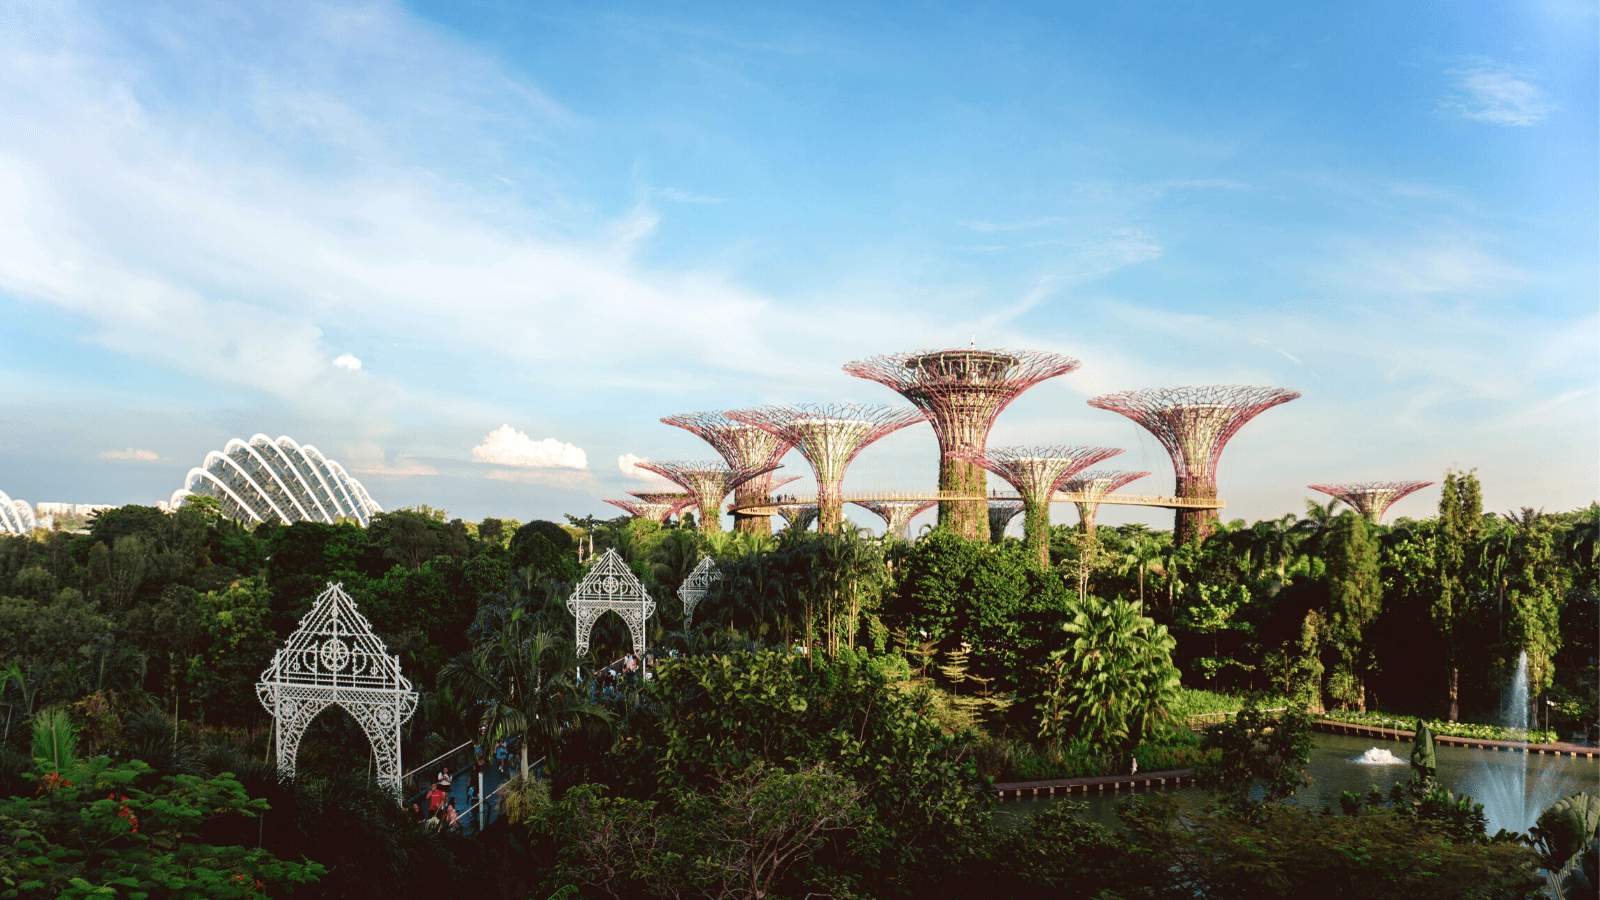 Explore the natural world at Gardens by the Bay in Singapore